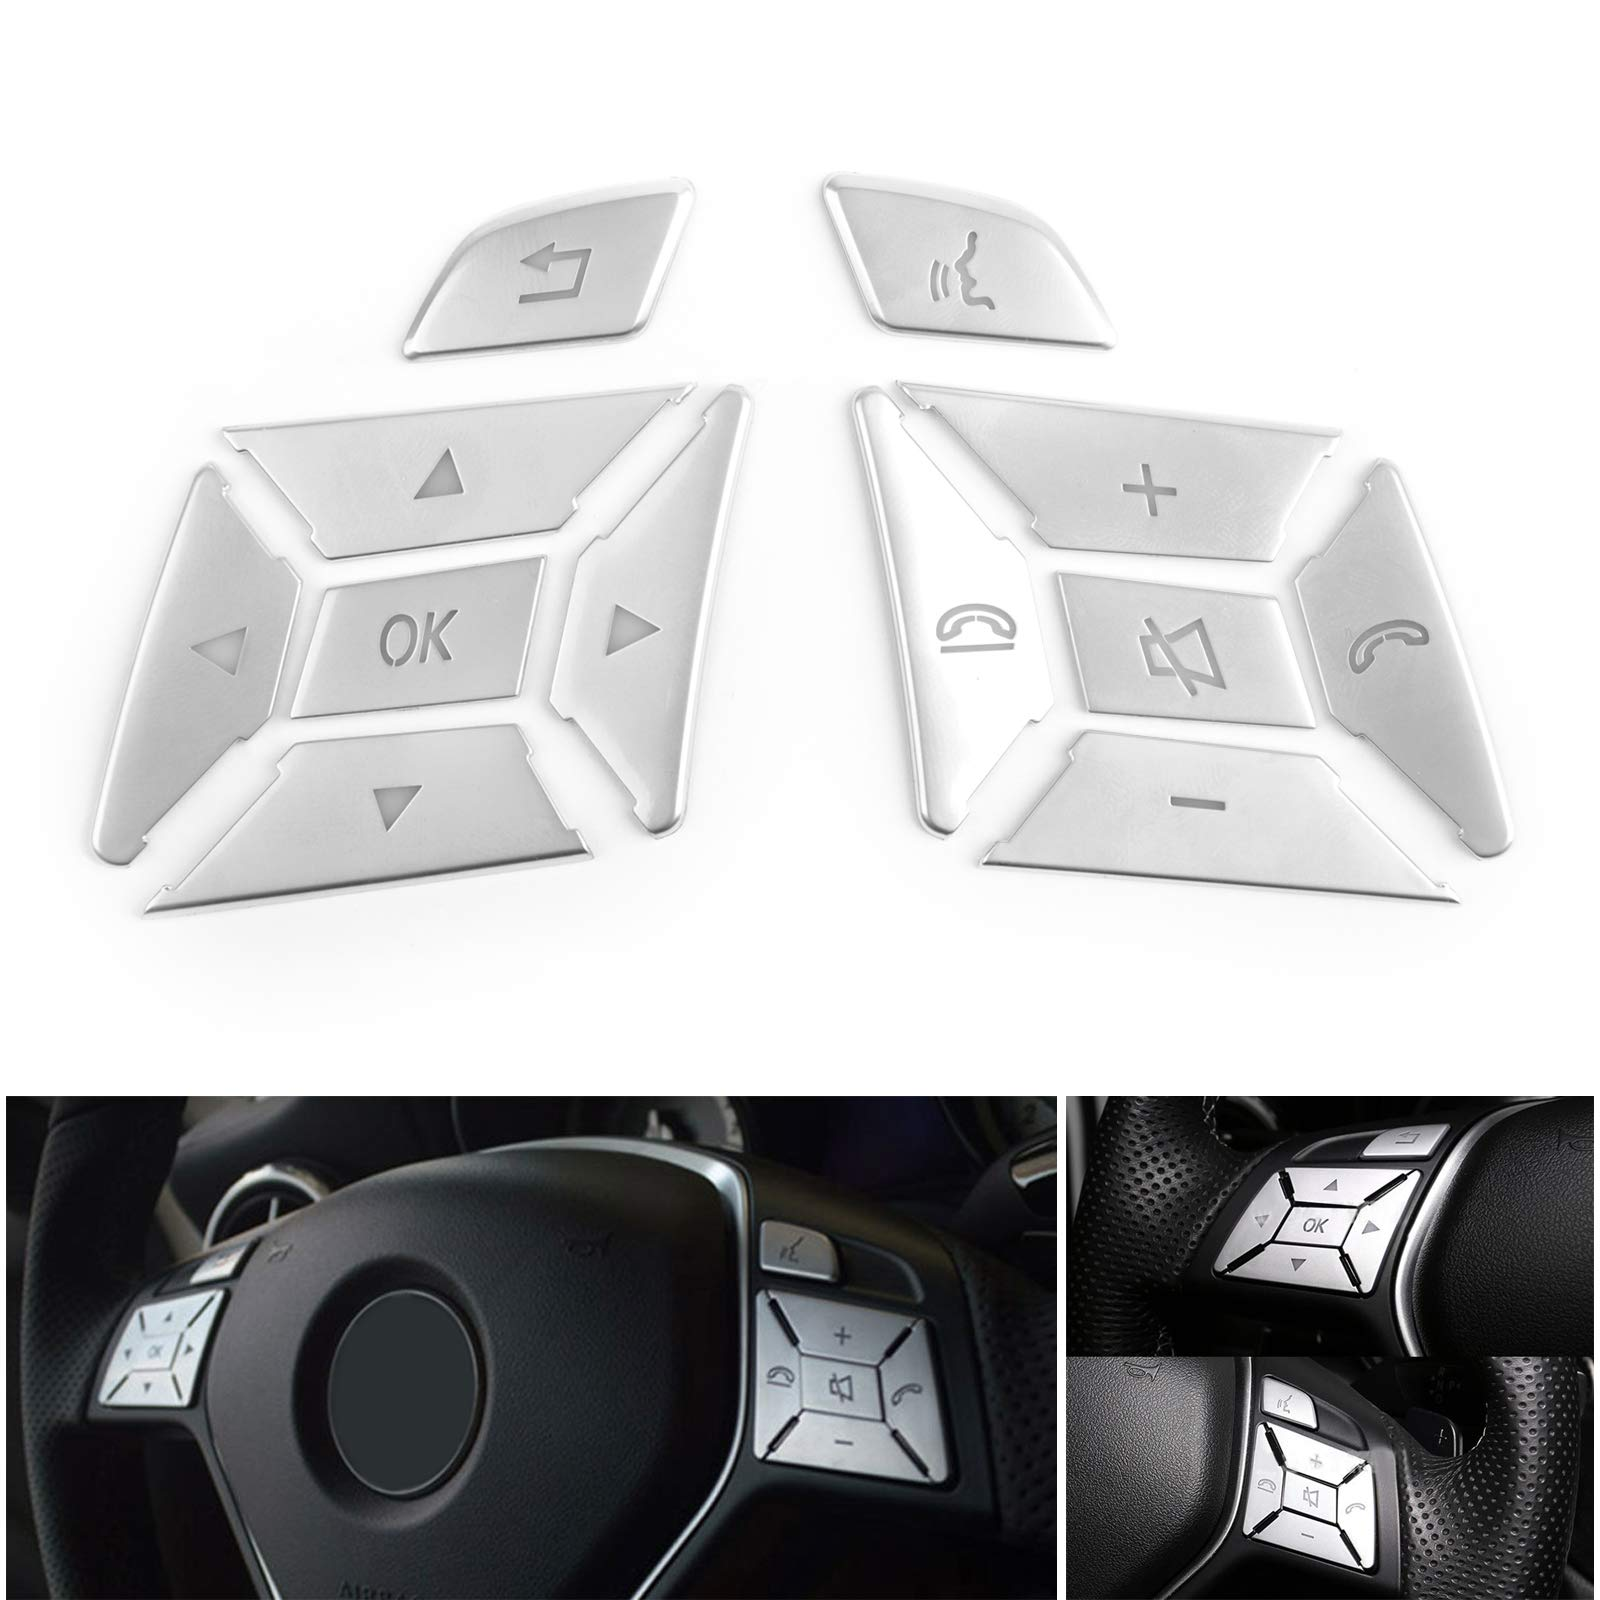 Areyourshop Steering Wheel Button Silver Trim for E C G Class W204 2012-2016 by Areyourshop